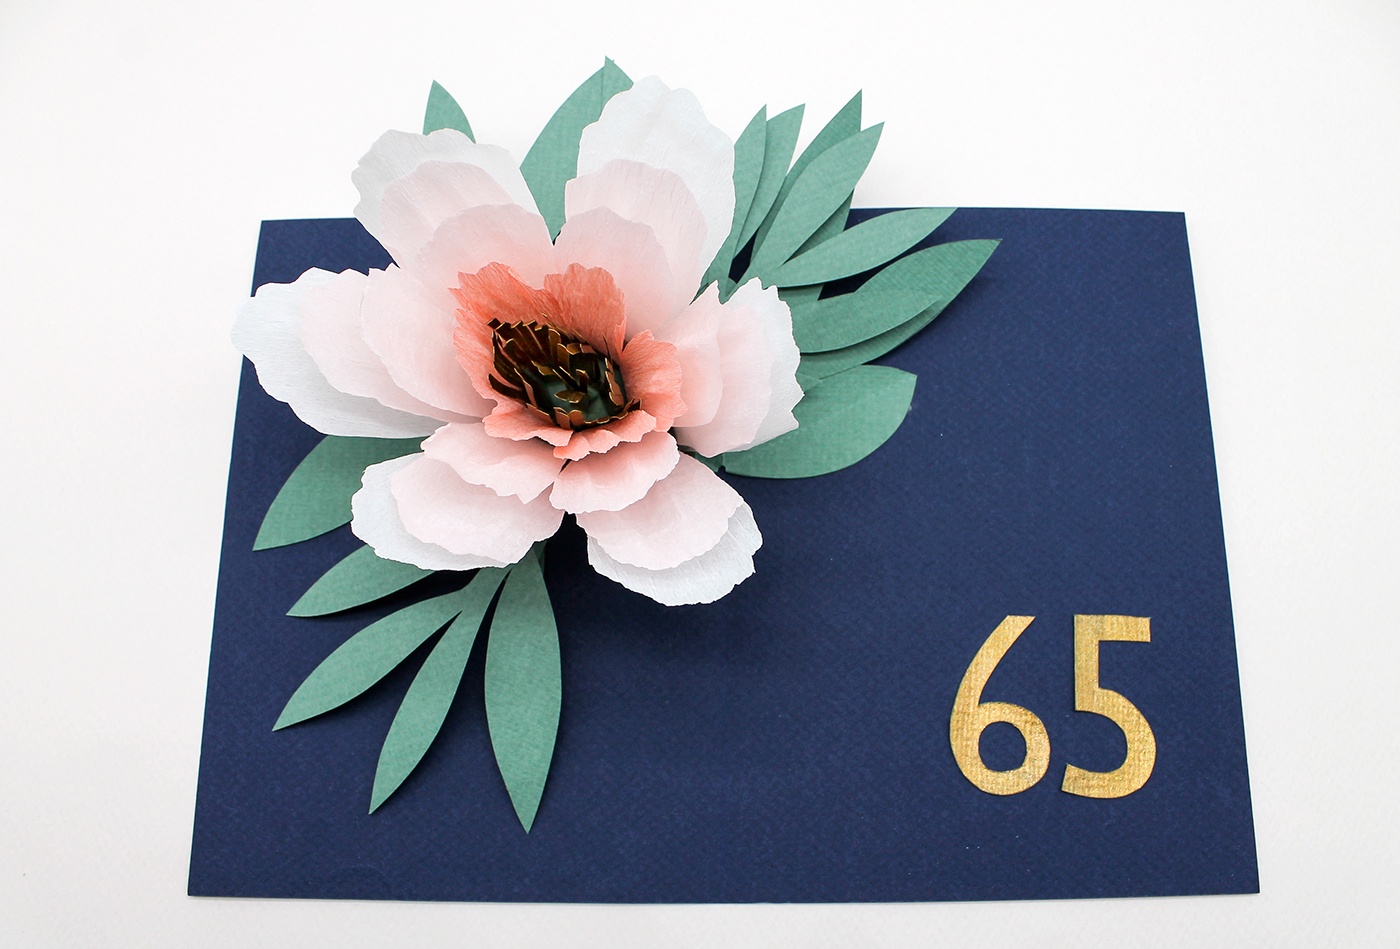 paper Popup paper engineering paper art paper flower Birthday greeting card mothers day floral